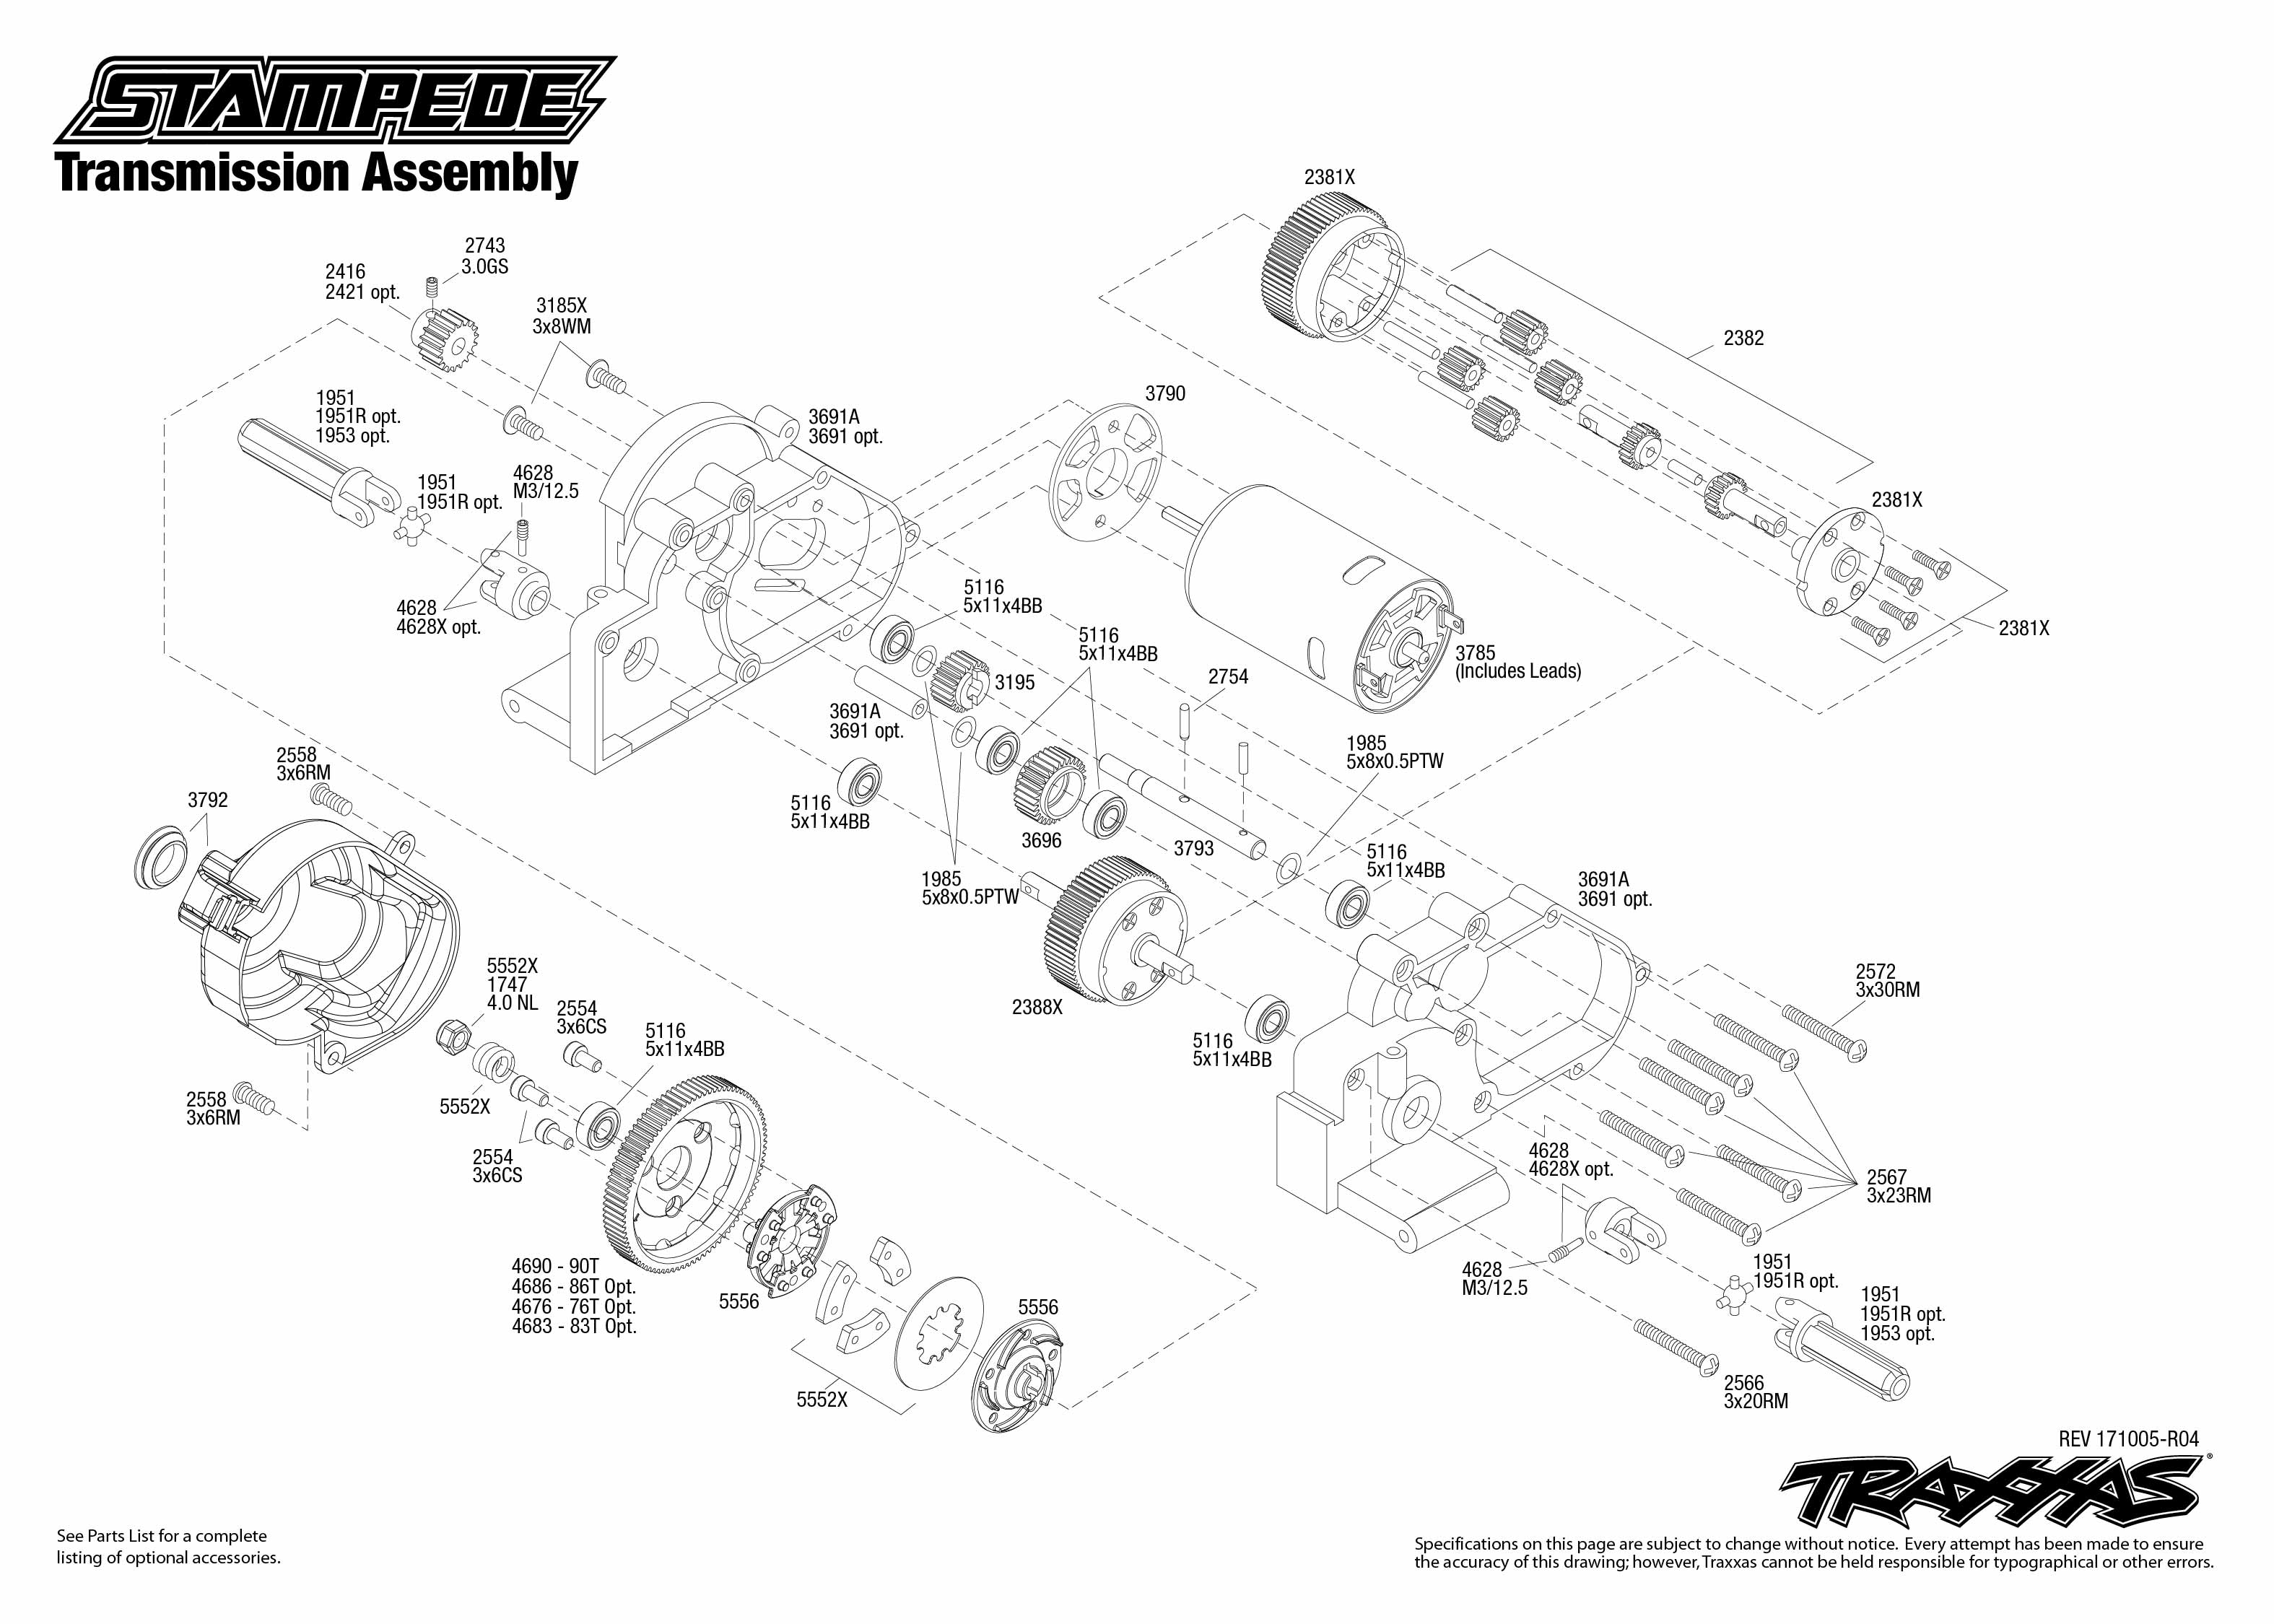 Stampede (36054-1) Transmission Assembly Exploded View | Traxxas